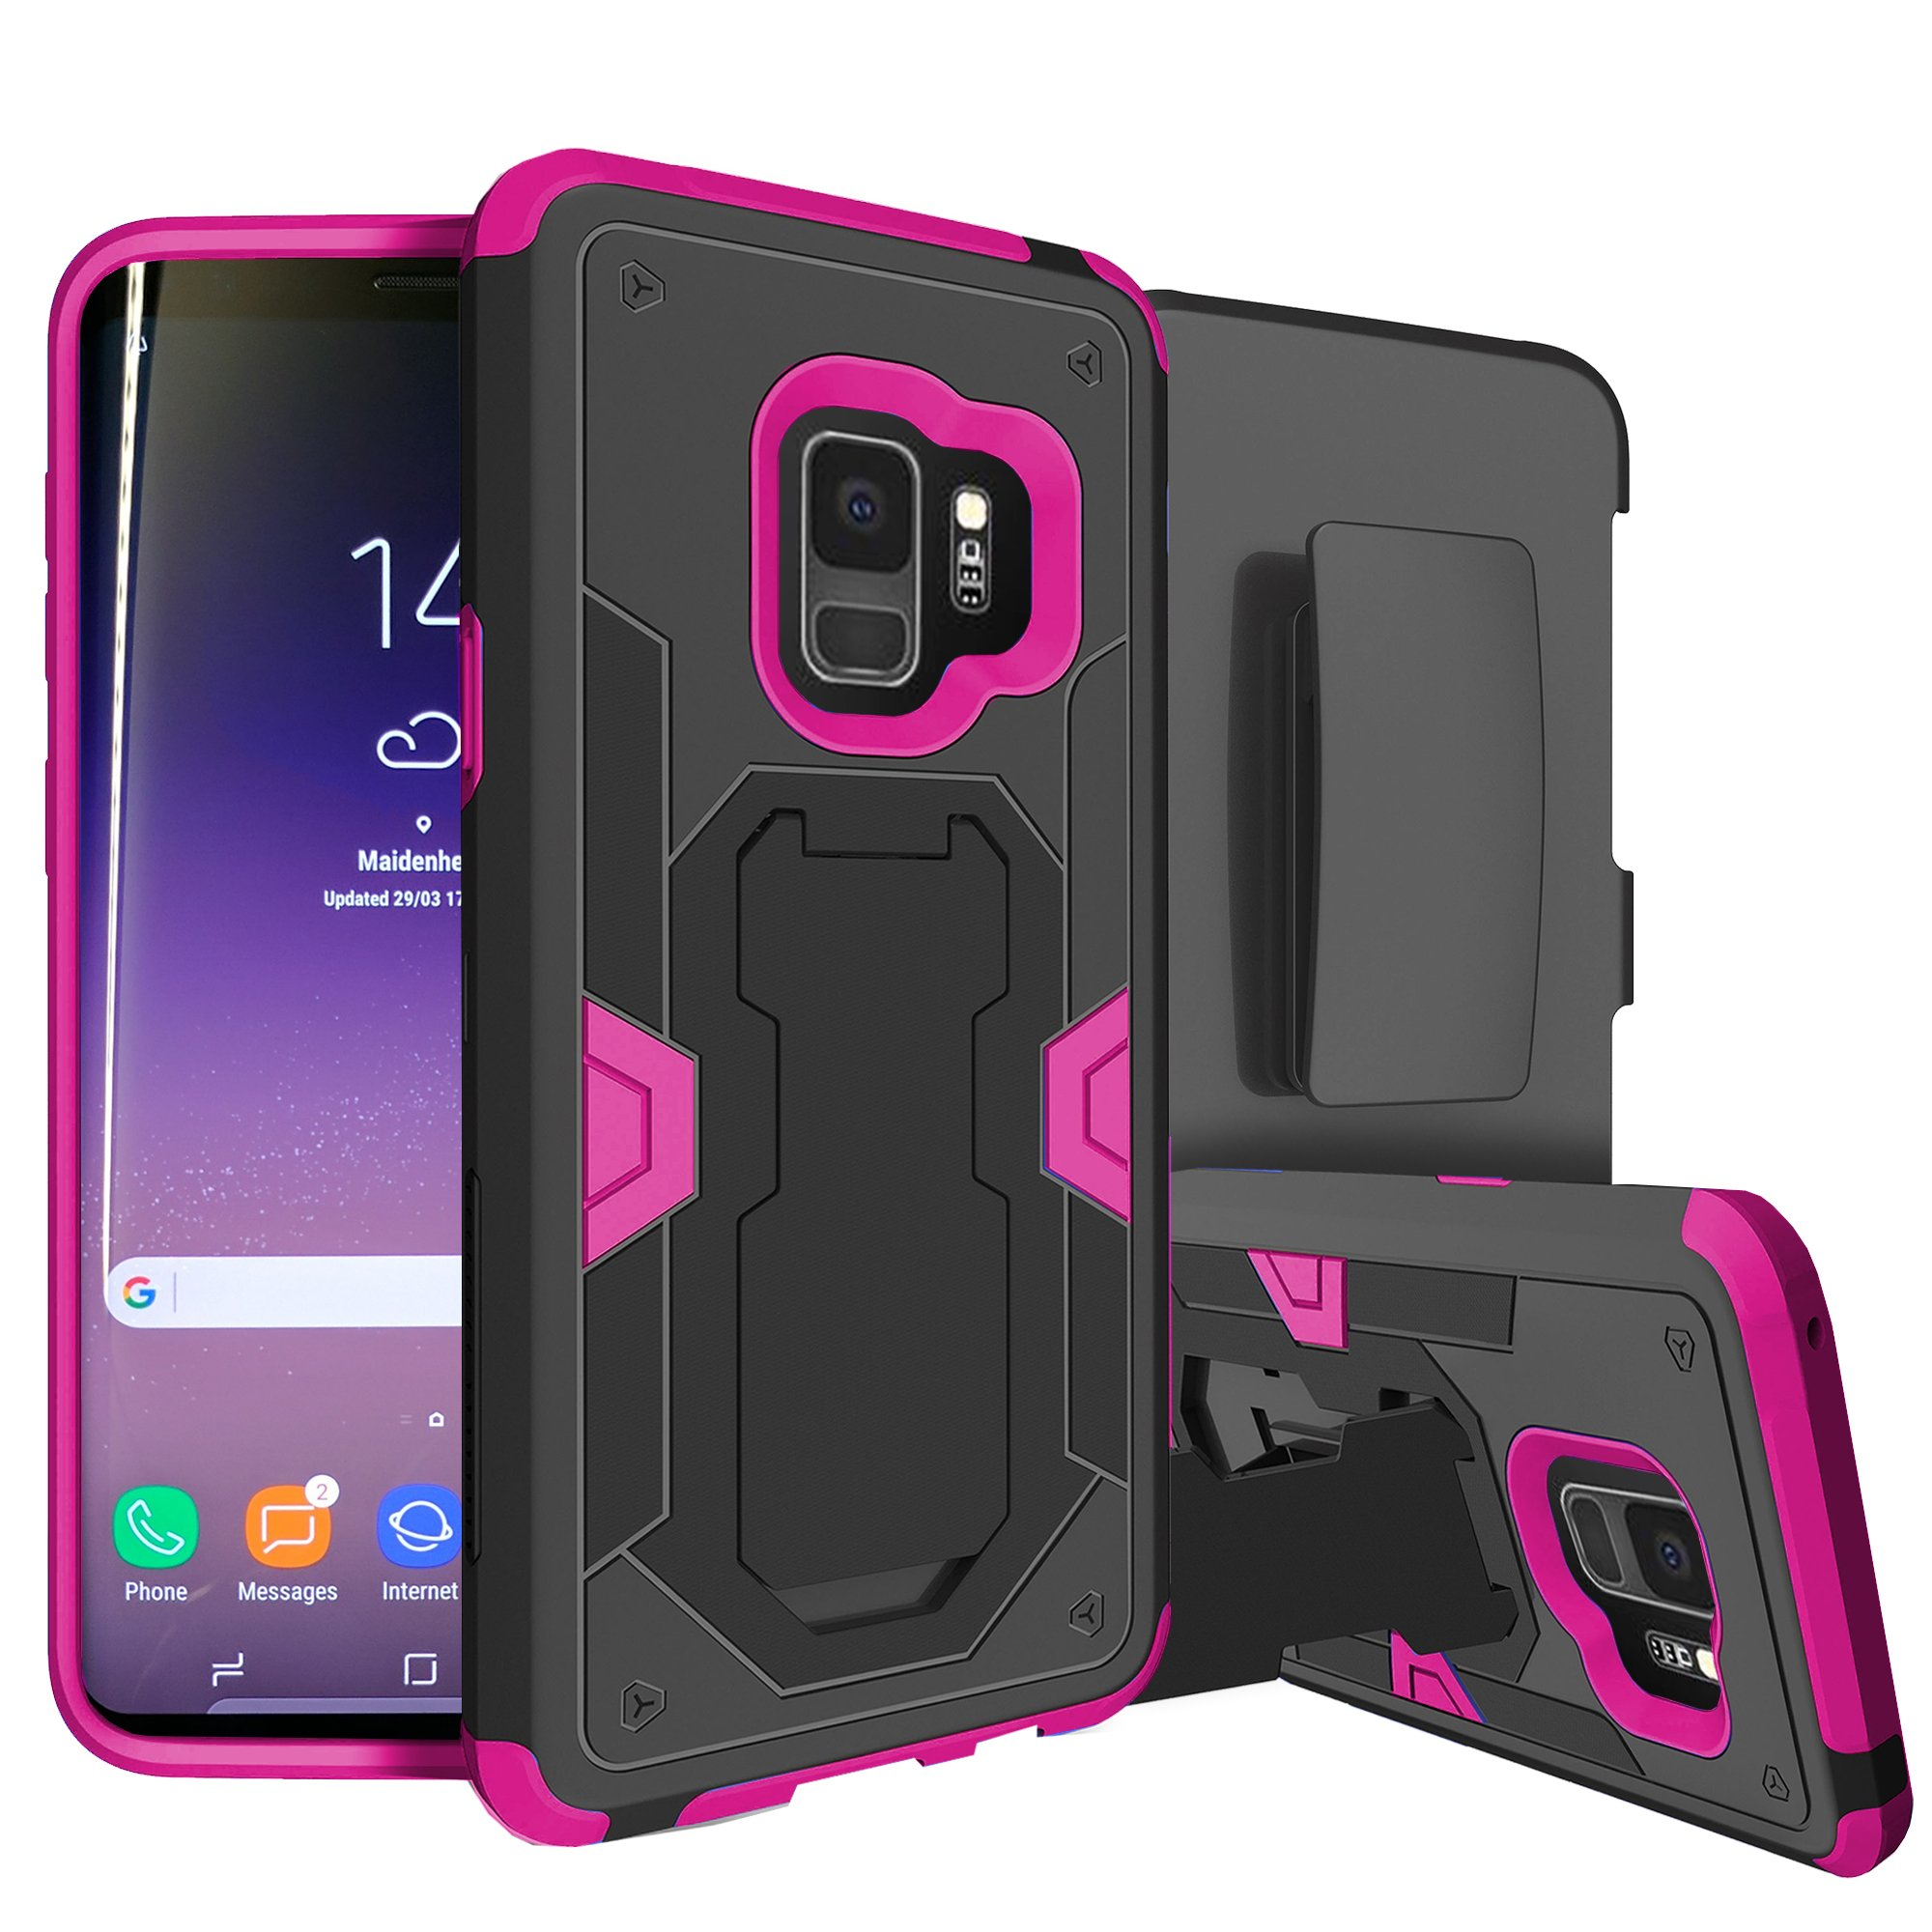 Samsung Galaxy S9 Rugged Defense Case by MINITURTLE [PINK MAX DEFENSE Case for Galaxy S9 SM-G960] Hybrid Silicone Case w/ Bonus Holster Belt-Clip & Built-in Kickstand Function - Mandala